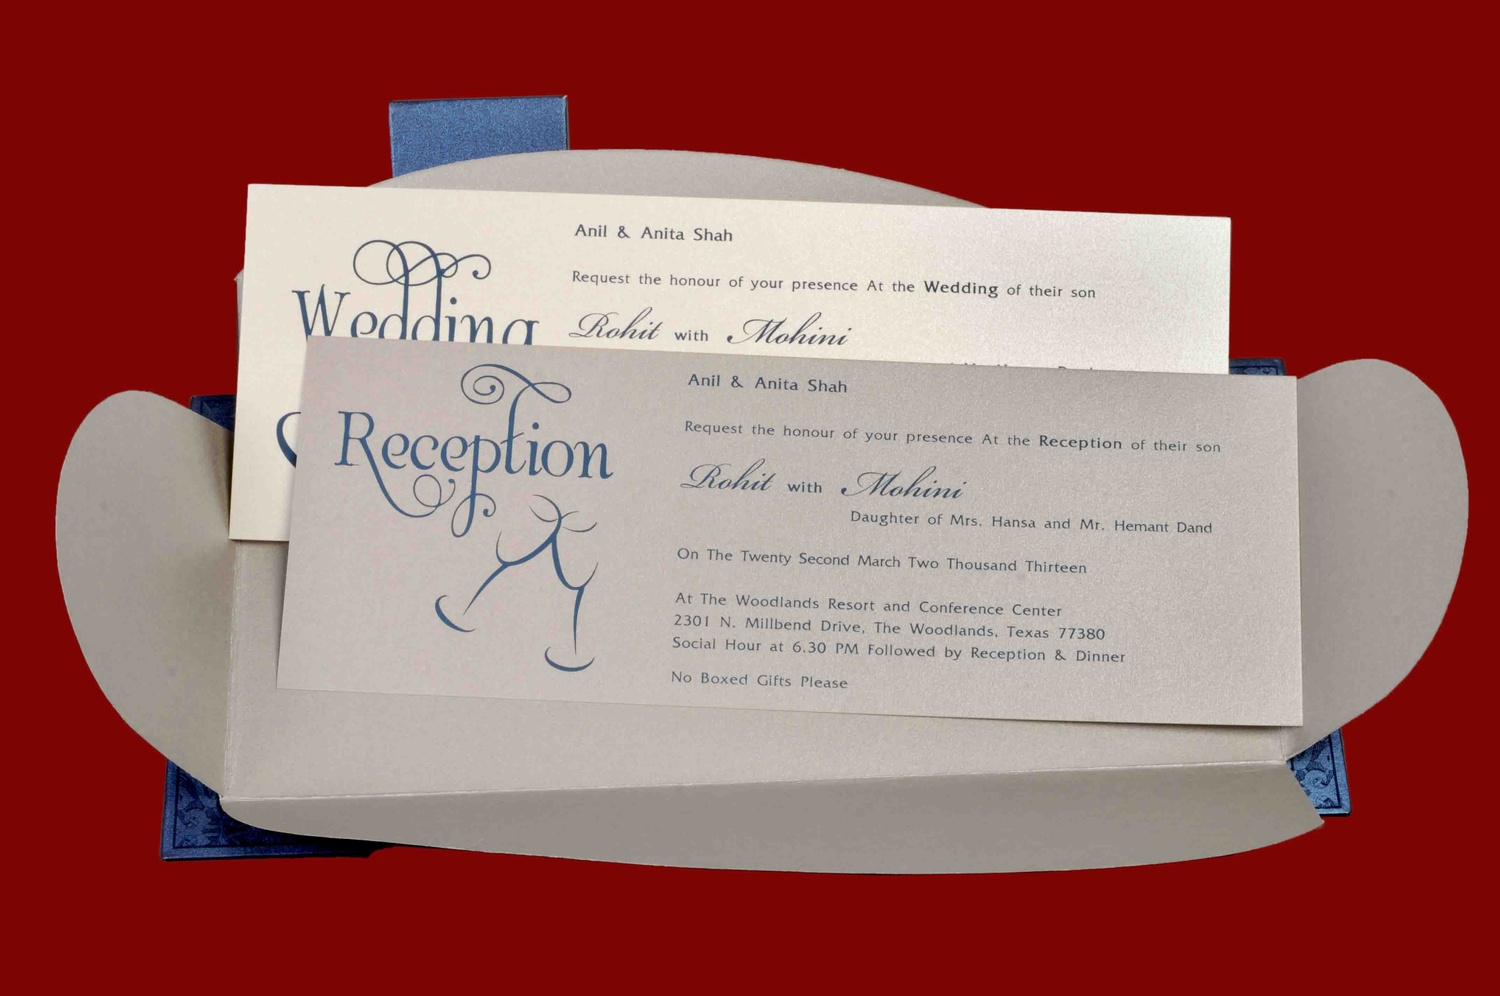 Aamrapali Card Centre, Wedding Invitation Card in Mumbai | WeddingZ